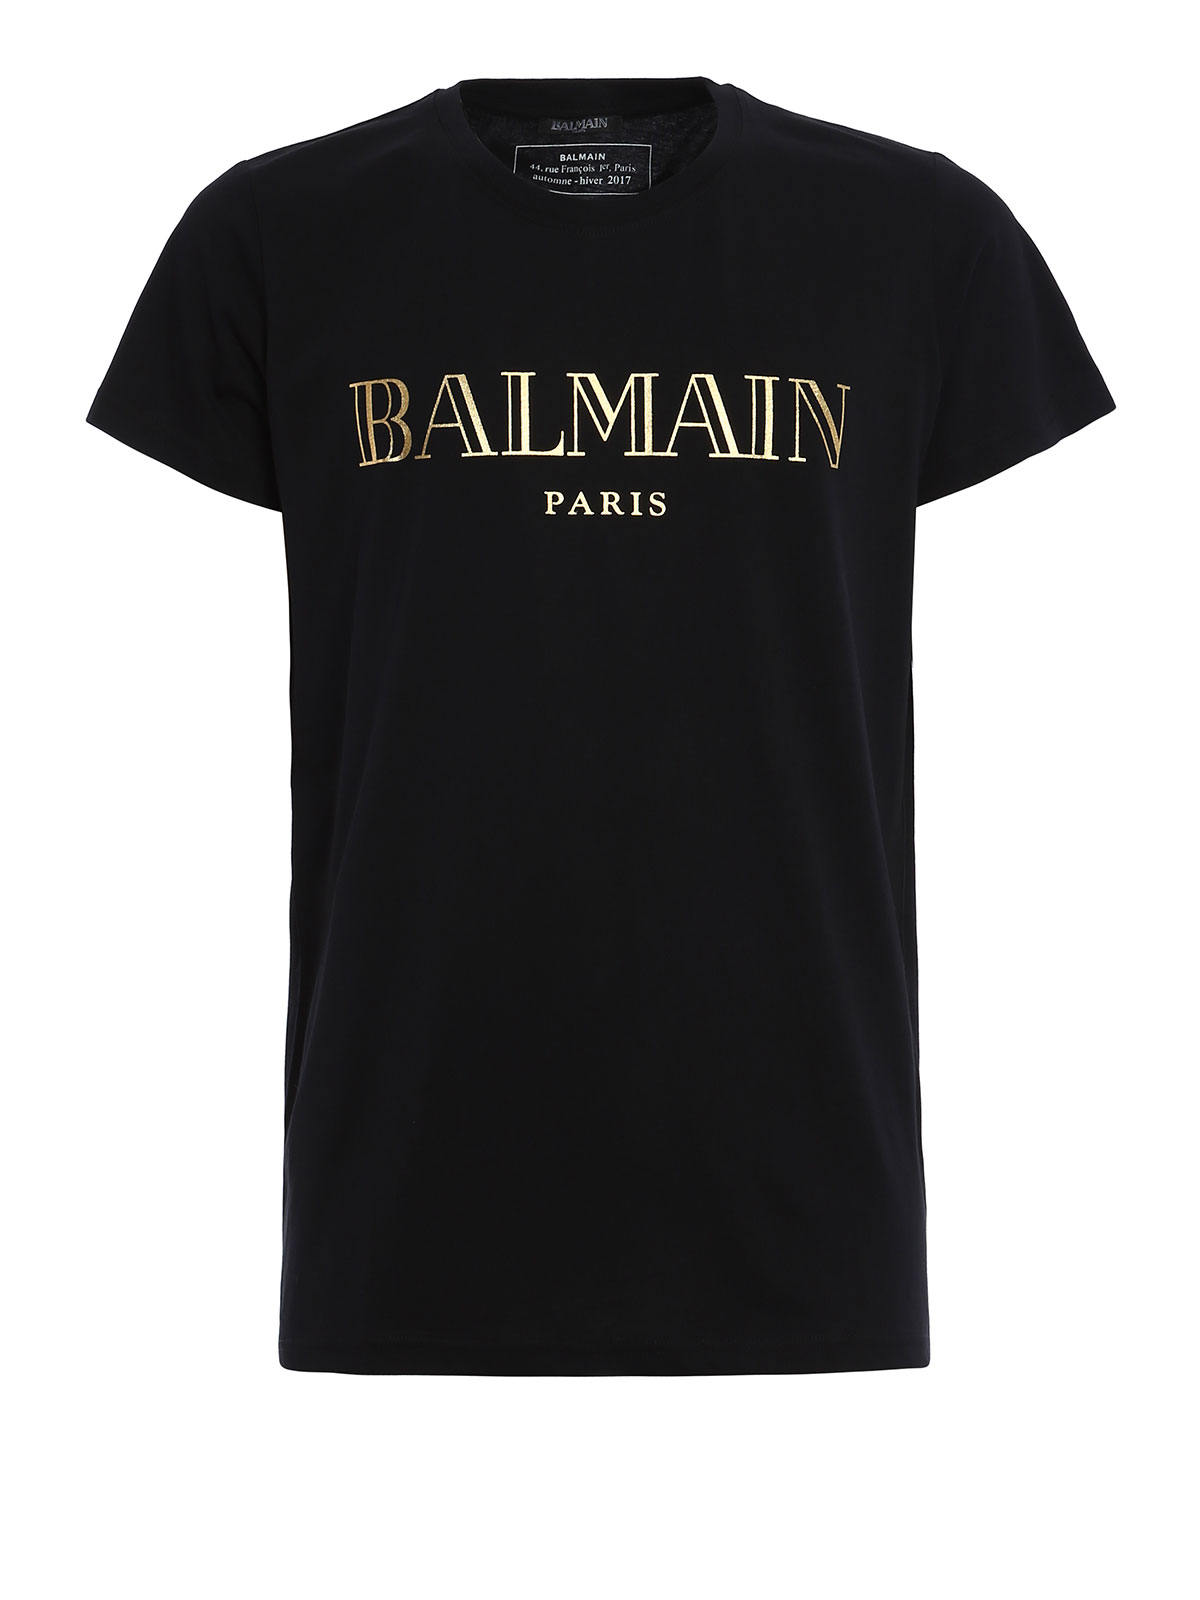 Logo print t shirt by balmain t shirts ikrix for Tee shirt logo printing